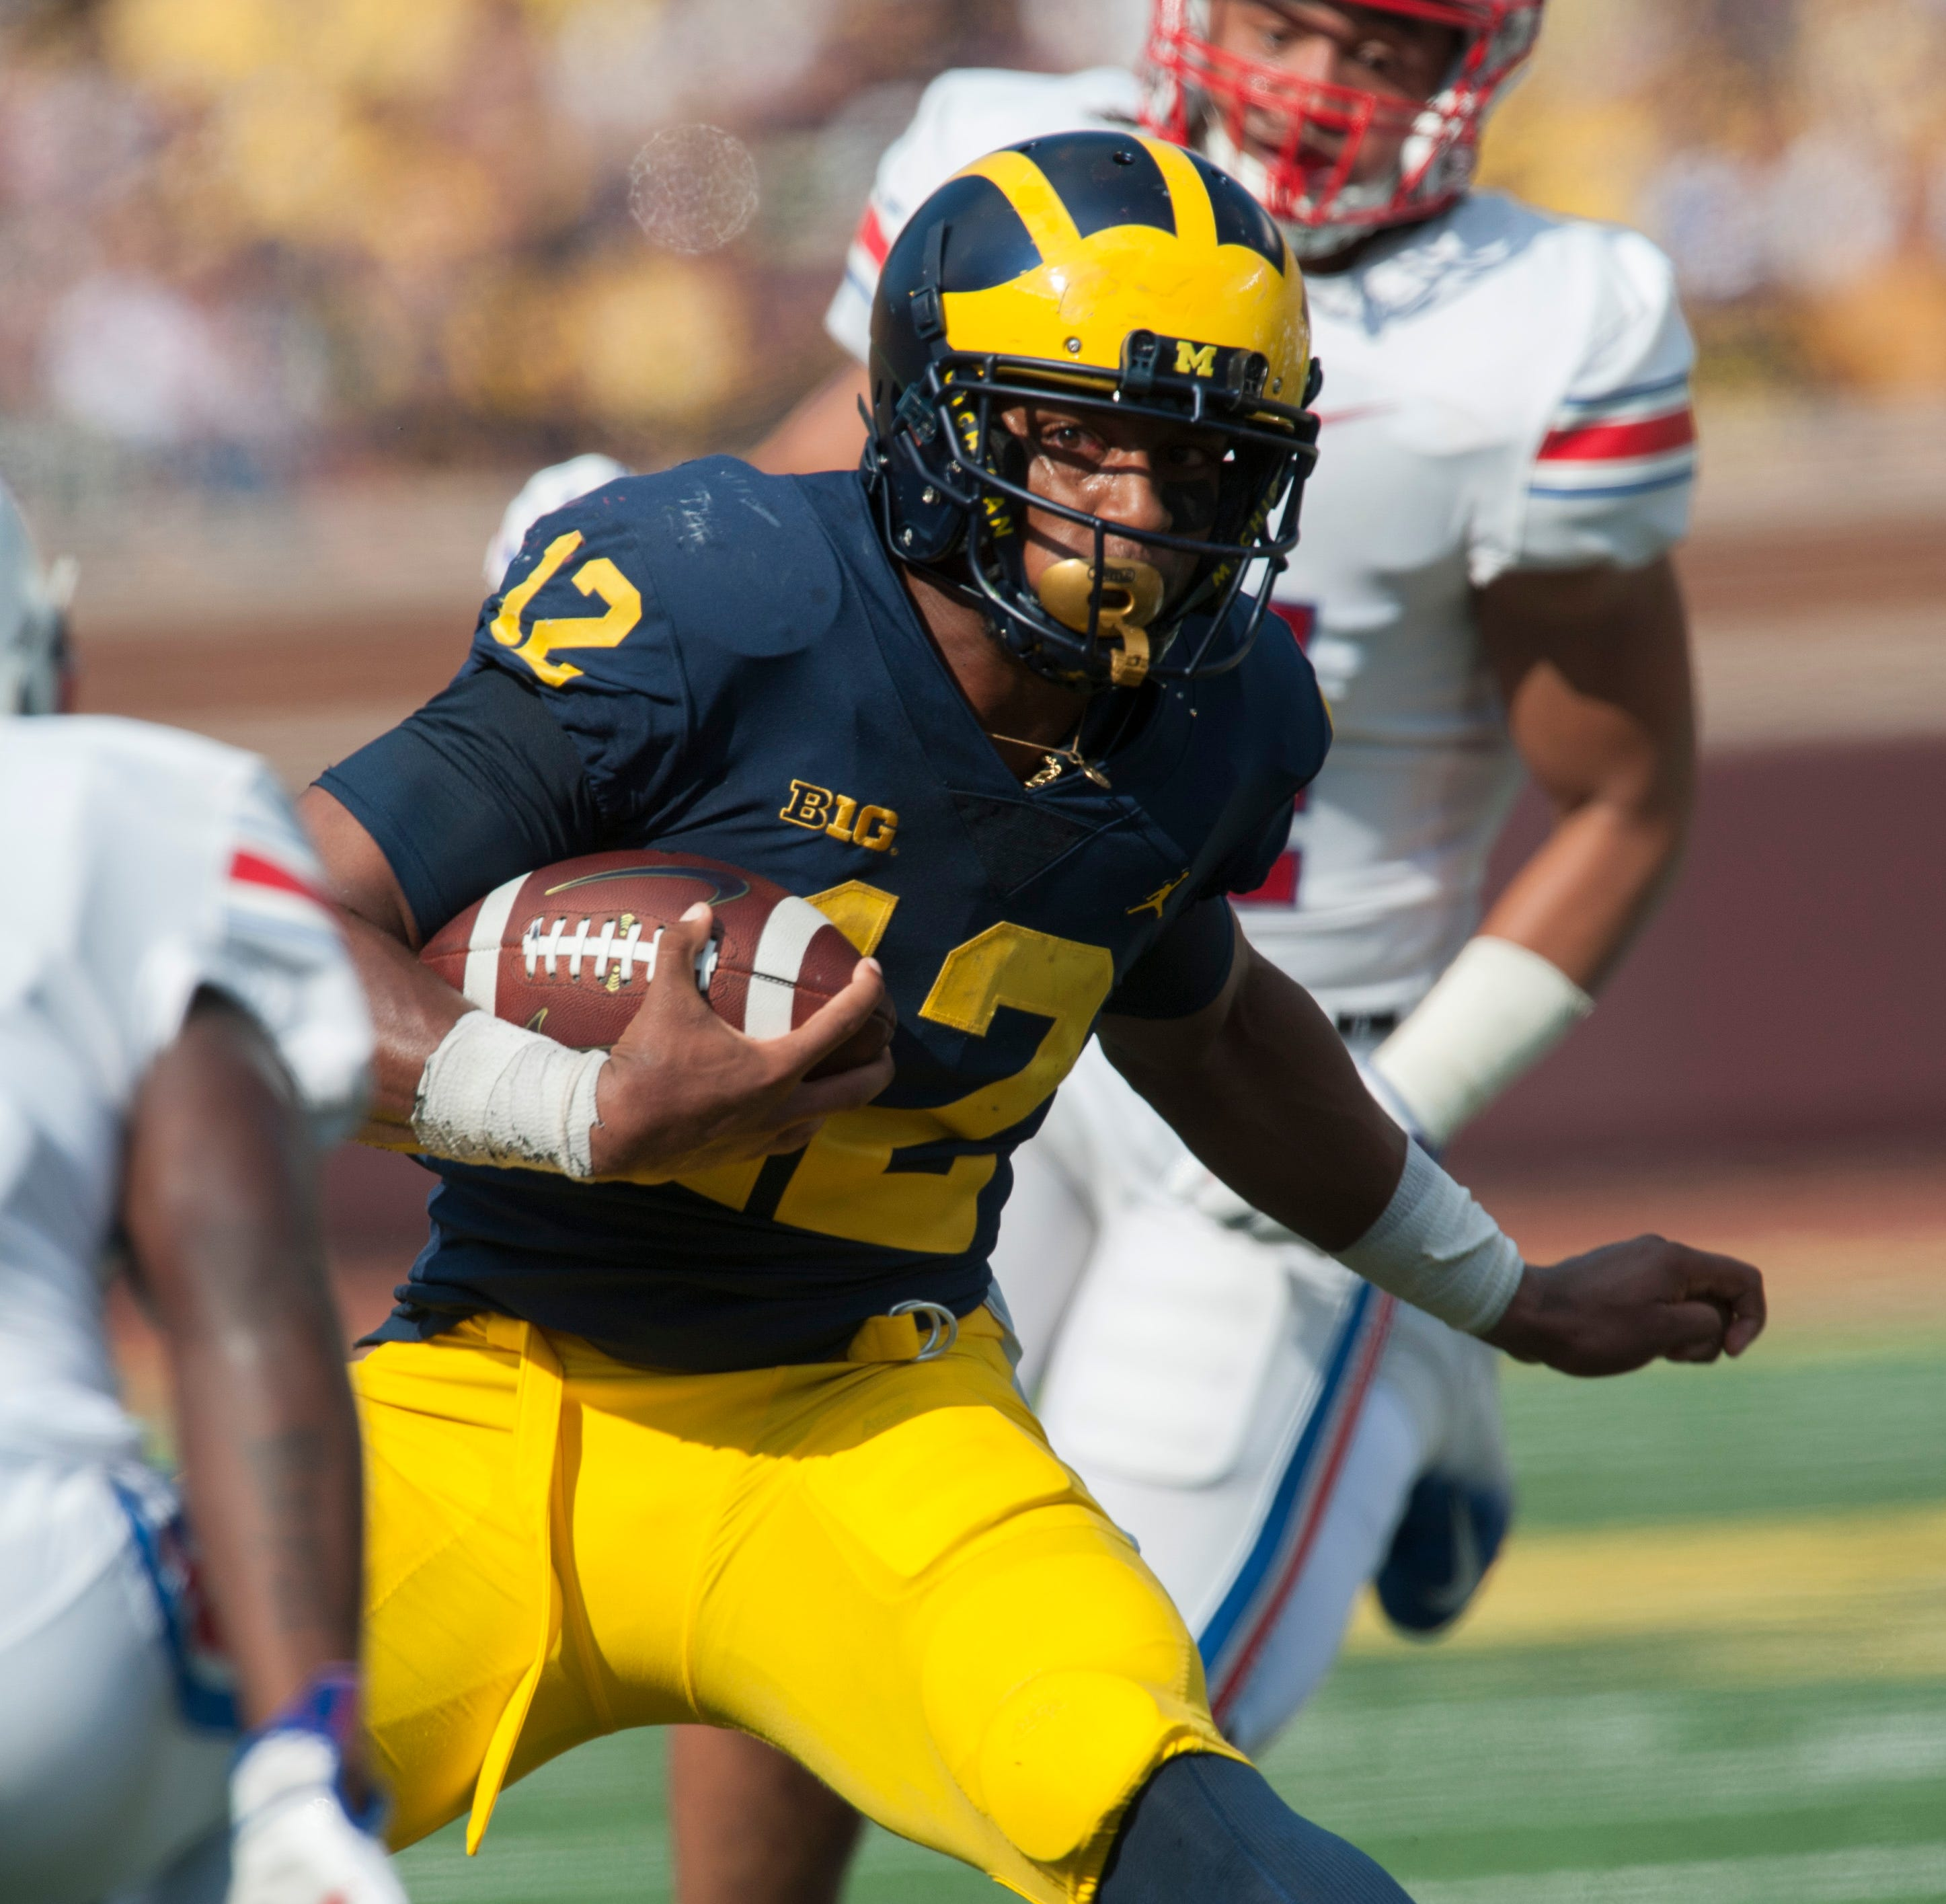 'Keep pushing': Suspended Michigan RB Chris Evans finds himself on outside looking in